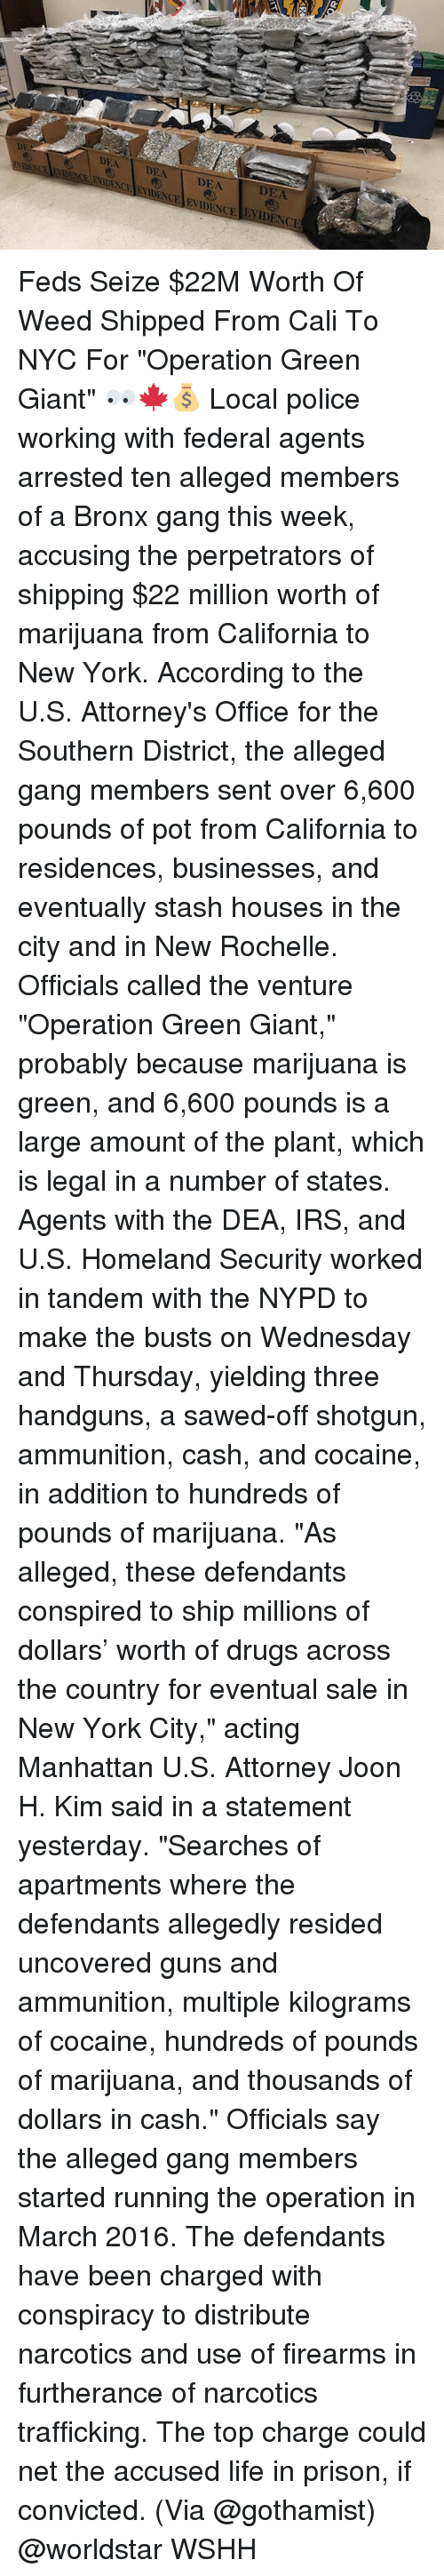 """attorneys: DEA DEA DEA  ENCE FVACEENDENCE ENIDENCE EVIDENCIE  2  DEA Feds Seize $22M Worth Of Weed Shipped From Cali To NYC For """"Operation Green Giant"""" 👀🍁💰 Local police working with federal agents arrested ten alleged members of a Bronx gang this week, accusing the perpetrators of shipping $22 million worth of marijuana from California to New York. According to the U.S. Attorney's Office for the Southern District, the alleged gang members sent over 6,600 pounds of pot from California to residences, businesses, and eventually stash houses in the city and in New Rochelle. Officials called the venture """"Operation Green Giant,"""" probably because marijuana is green, and 6,600 pounds is a large amount of the plant, which is legal in a number of states. Agents with the DEA, IRS, and U.S. Homeland Security worked in tandem with the NYPD to make the busts on Wednesday and Thursday, yielding three handguns, a sawed-off shotgun, ammunition, cash, and cocaine, in addition to hundreds of pounds of marijuana. """"As alleged, these defendants conspired to ship millions of dollars' worth of drugs across the country for eventual sale in New York City,"""" acting Manhattan U.S. Attorney Joon H. Kim said in a statement yesterday. """"Searches of apartments where the defendants allegedly resided uncovered guns and ammunition, multiple kilograms of cocaine, hundreds of pounds of marijuana, and thousands of dollars in cash."""" Officials say the alleged gang members started running the operation in March 2016. The defendants have been charged with conspiracy to distribute narcotics and use of firearms in furtherance of narcotics trafficking. The top charge could net the accused life in prison, if convicted. (Via @gothamist) @worldstar WSHH"""